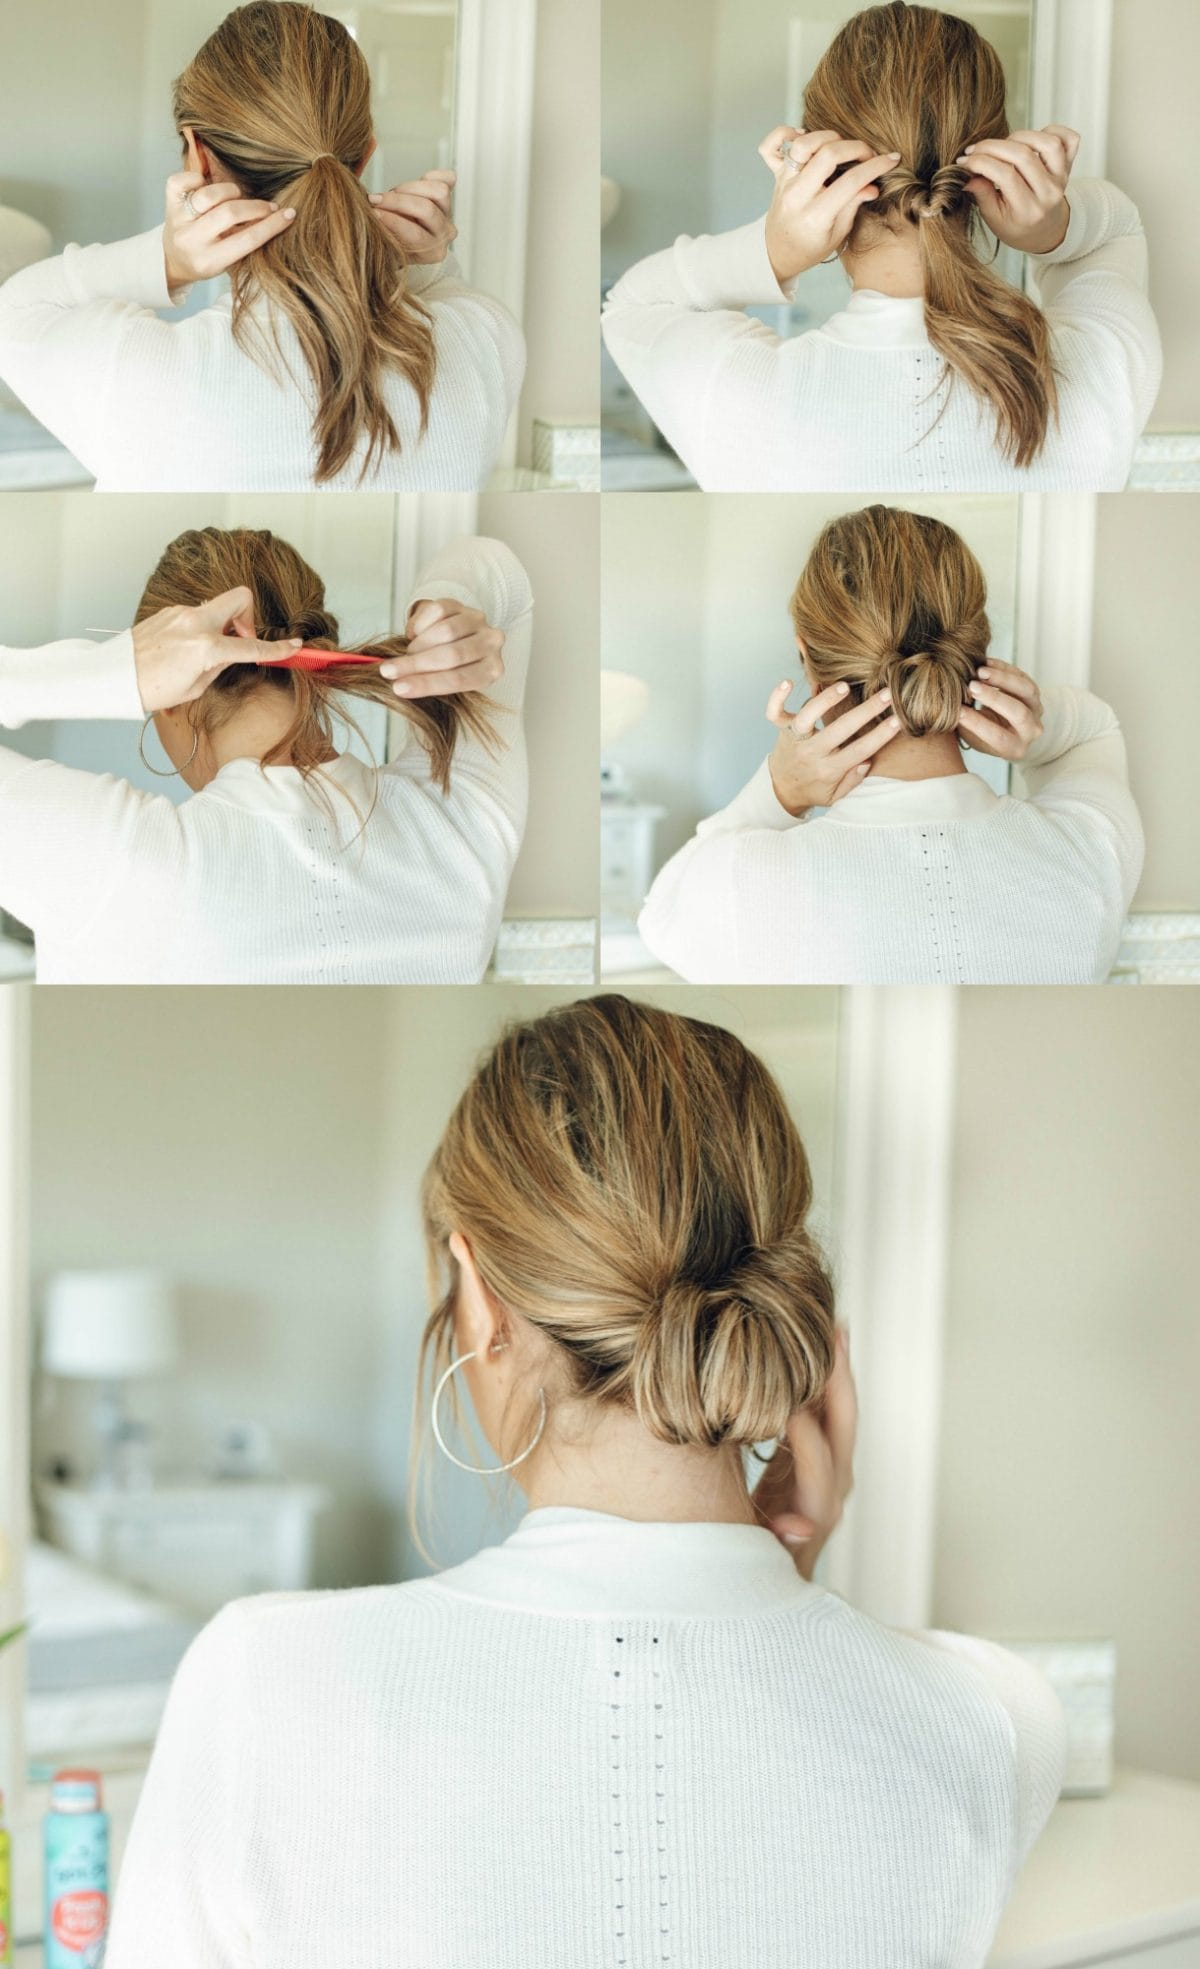 Surprising 3 Easy Hairstyles For Second Day Hair And Beyond Fine Hair Schematic Wiring Diagrams Phreekkolirunnerswayorg